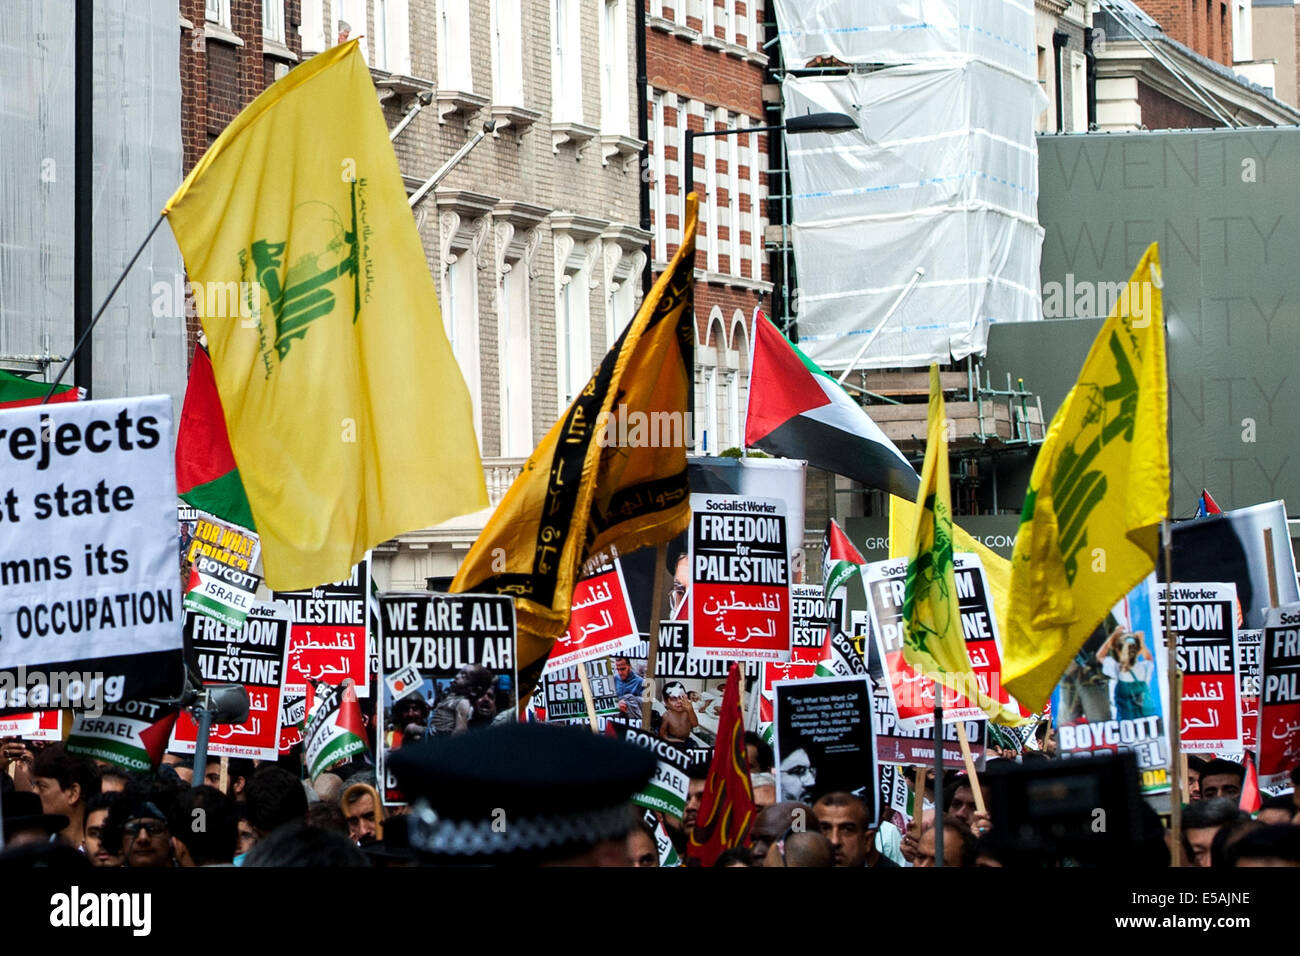 London, UK. 25th July, 2014. Hezbollah flags raised as thousands march from the BBC's Broadcasting House to - Stock Image